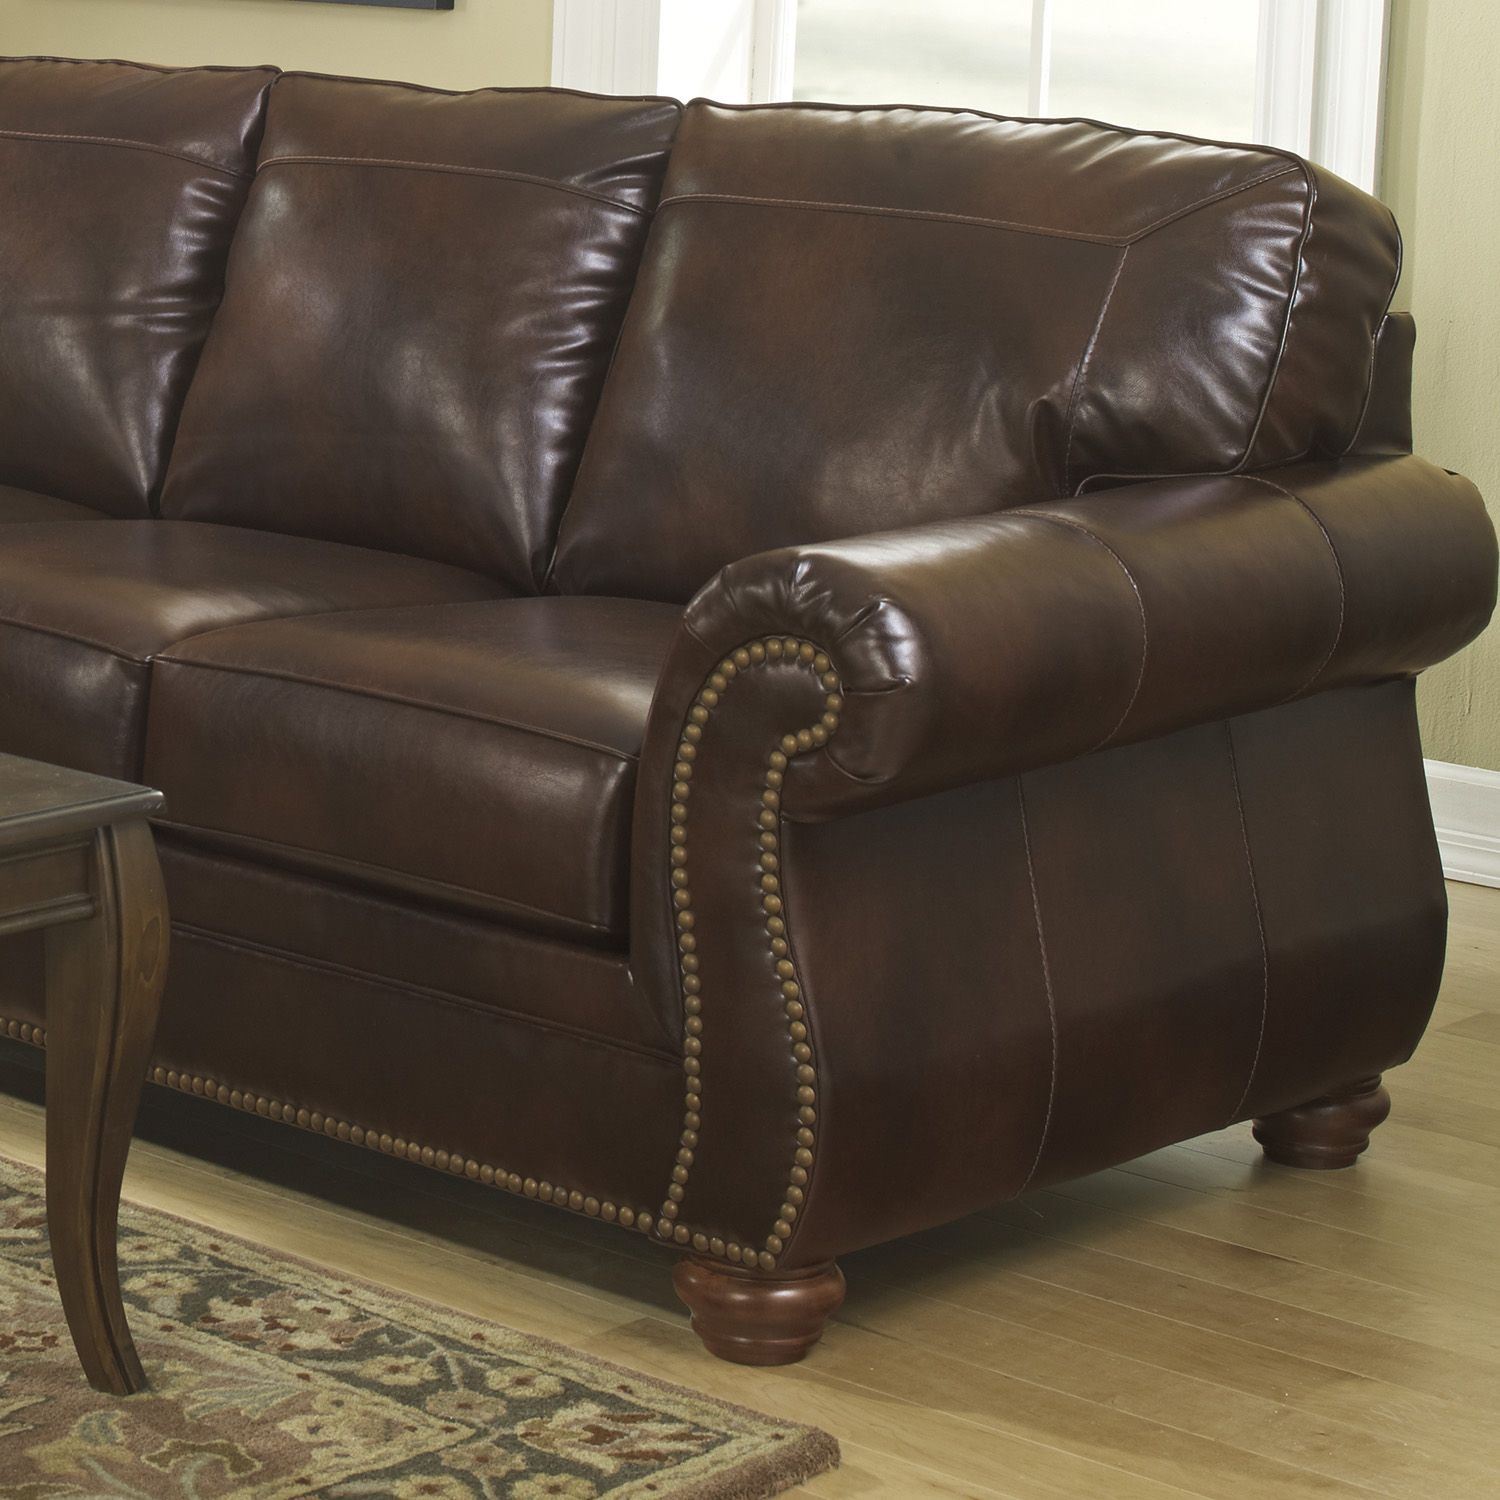 Berkline sofas sams club 28 images berkline sofa for Berkline chaise recliner